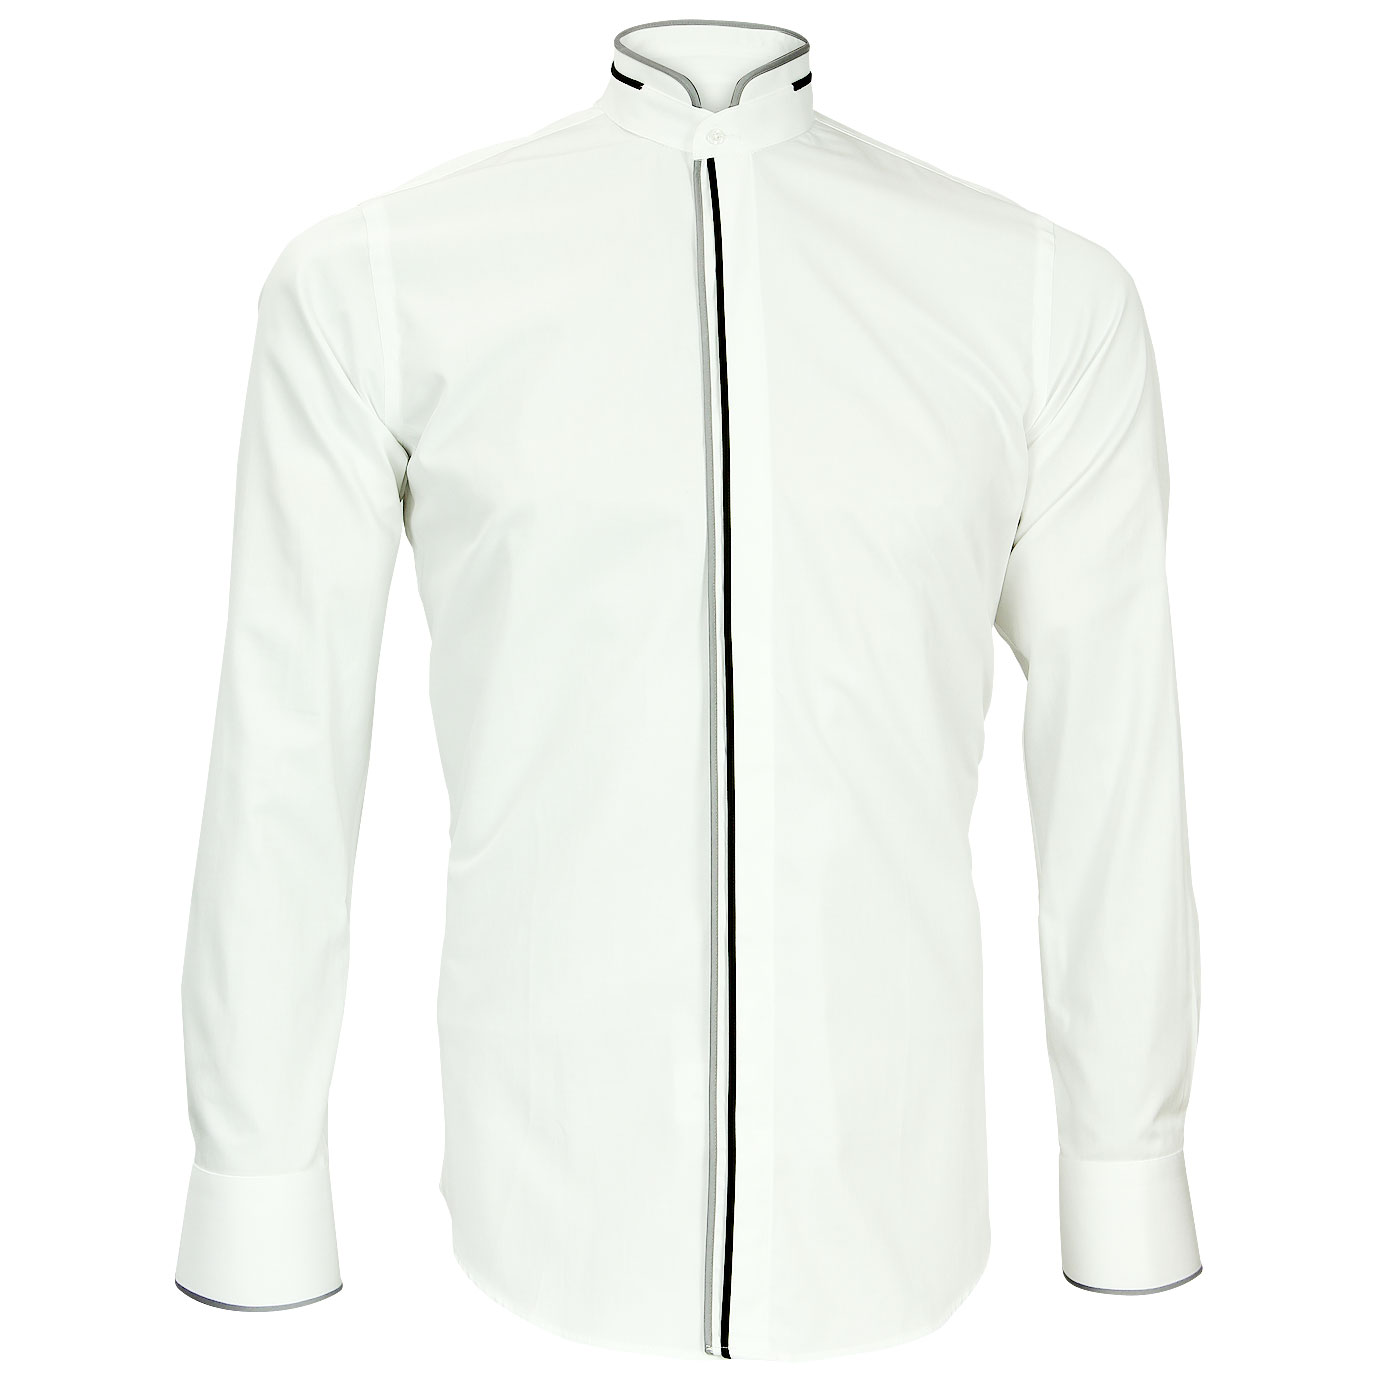 WebMenshirts helps you for choose your shirt's collar